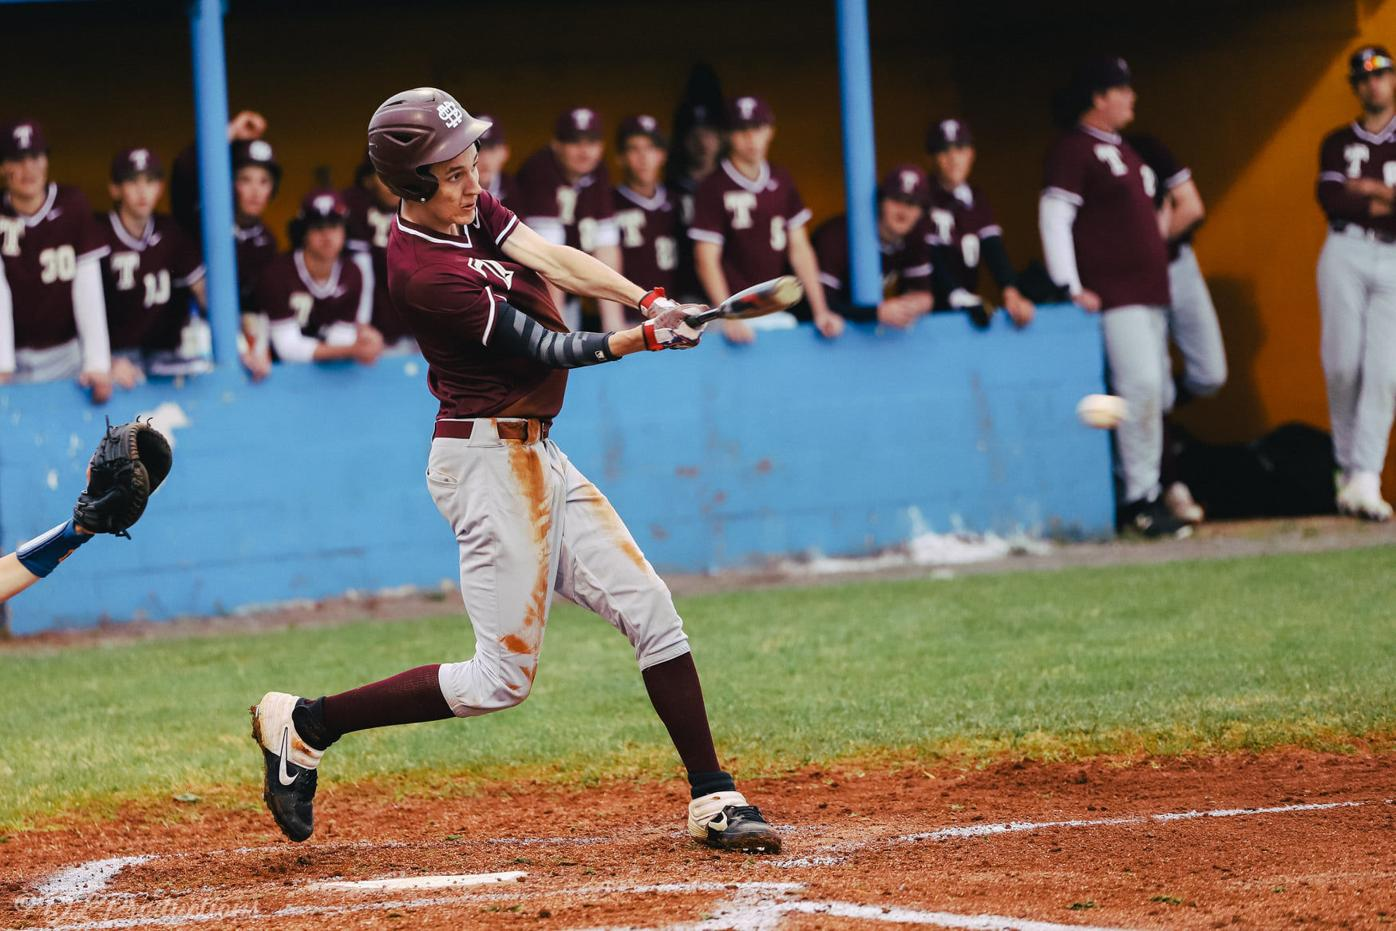 'This year they are bigger, stronger, faster'; Tellico Plains has high hopes heading in